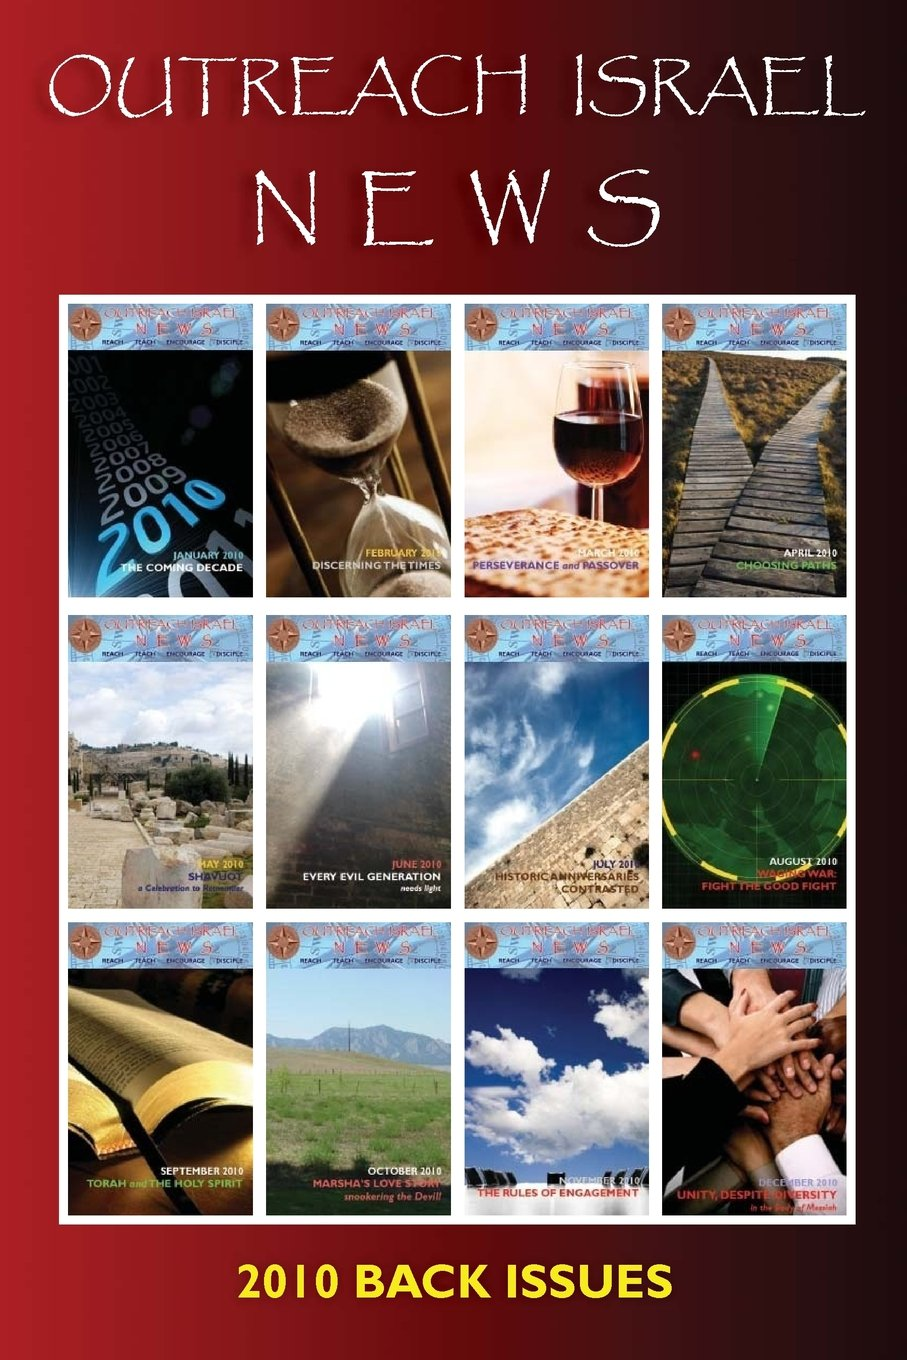 Outreach Israel News 2010 Back Issues